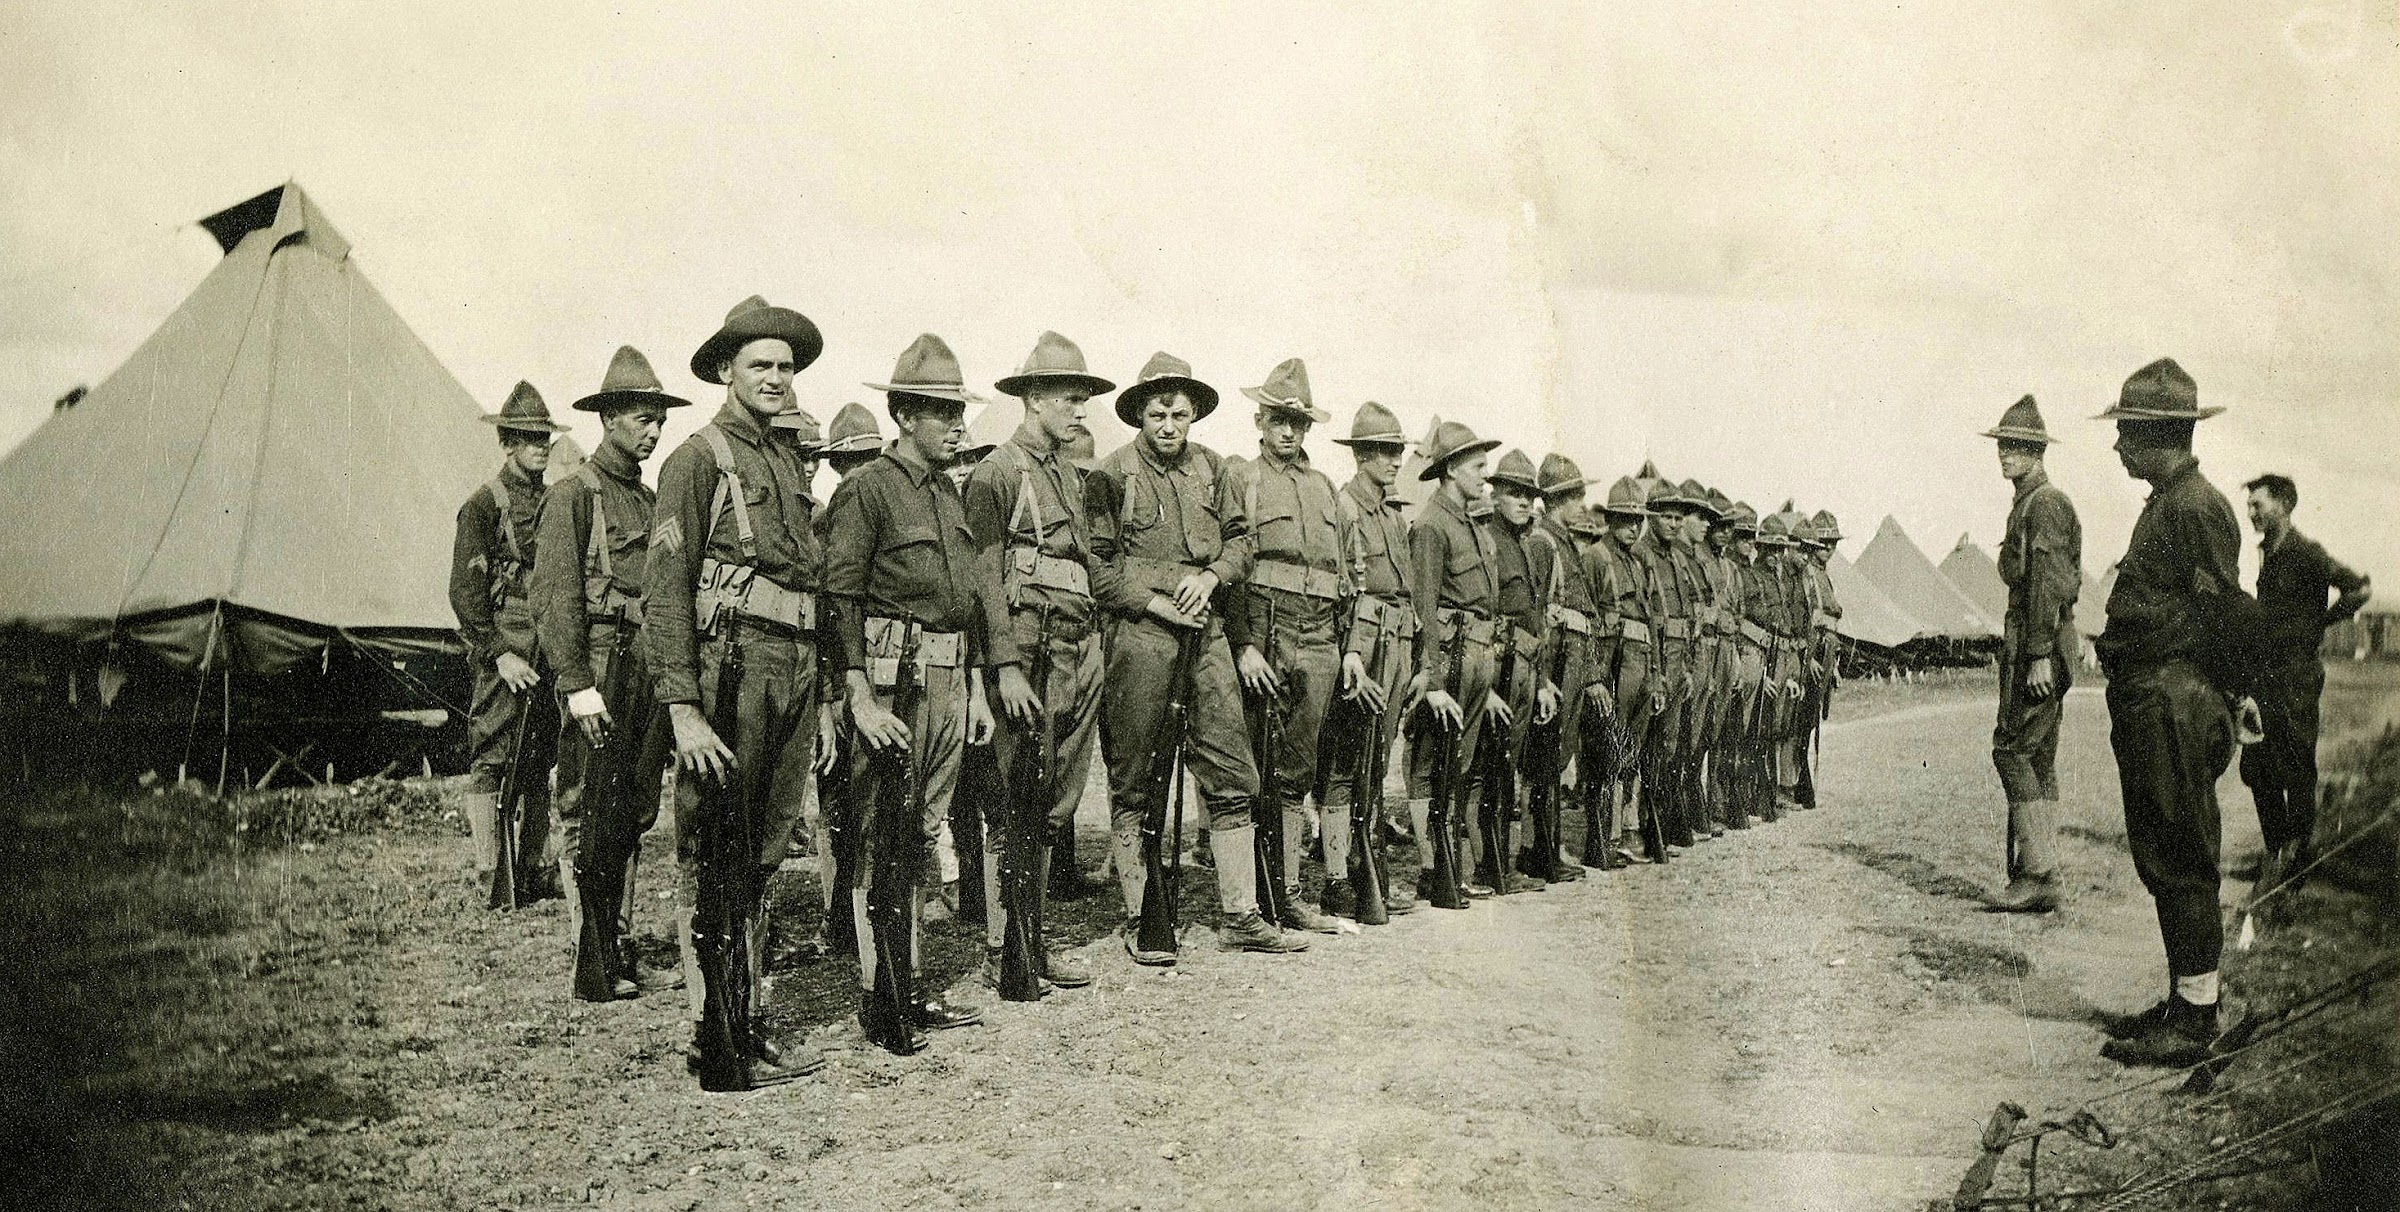 1917: National Guard units protected U.S. border